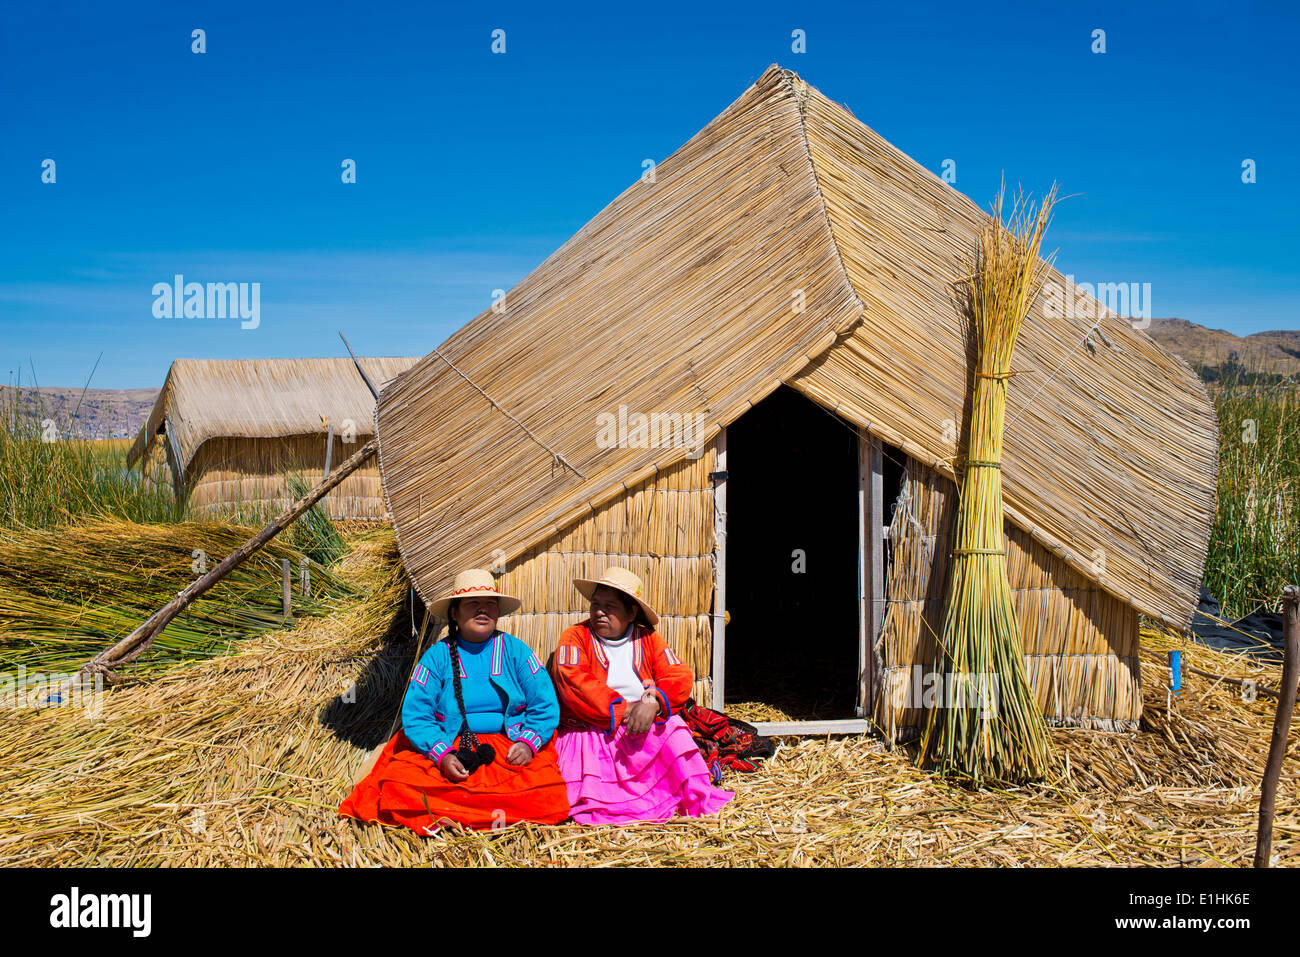 Two women of the Uro Indians wearing traditional dress sitting in front of a reed hut, floating islands made of - Stock Image